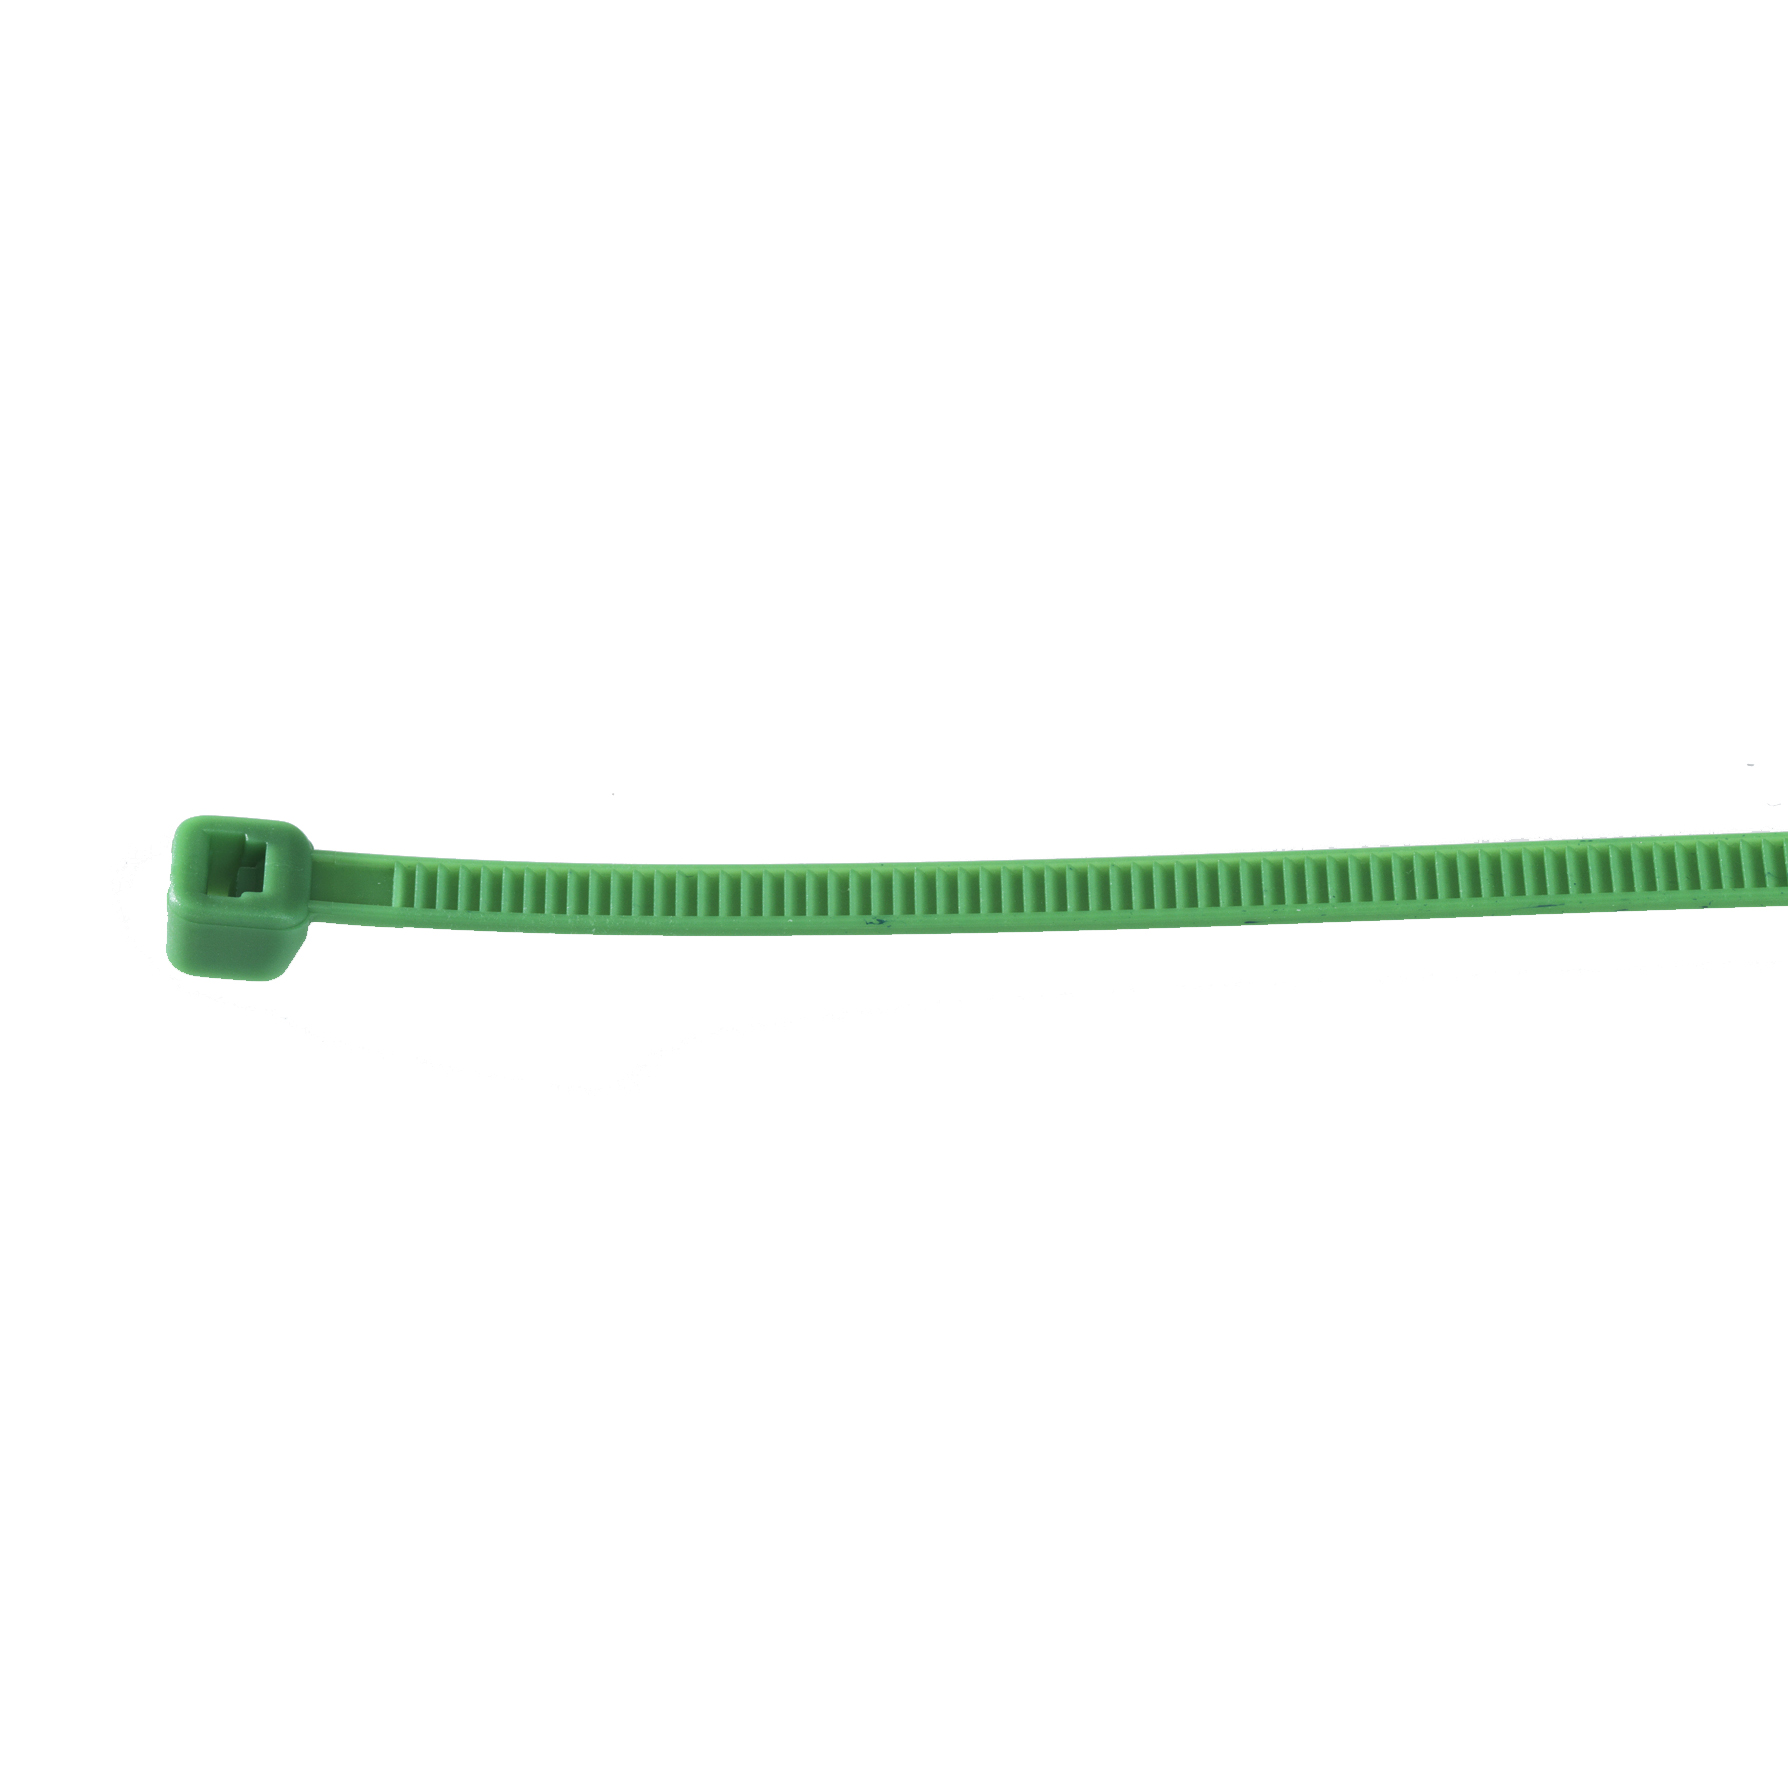 Large, Green Cable Tie Image